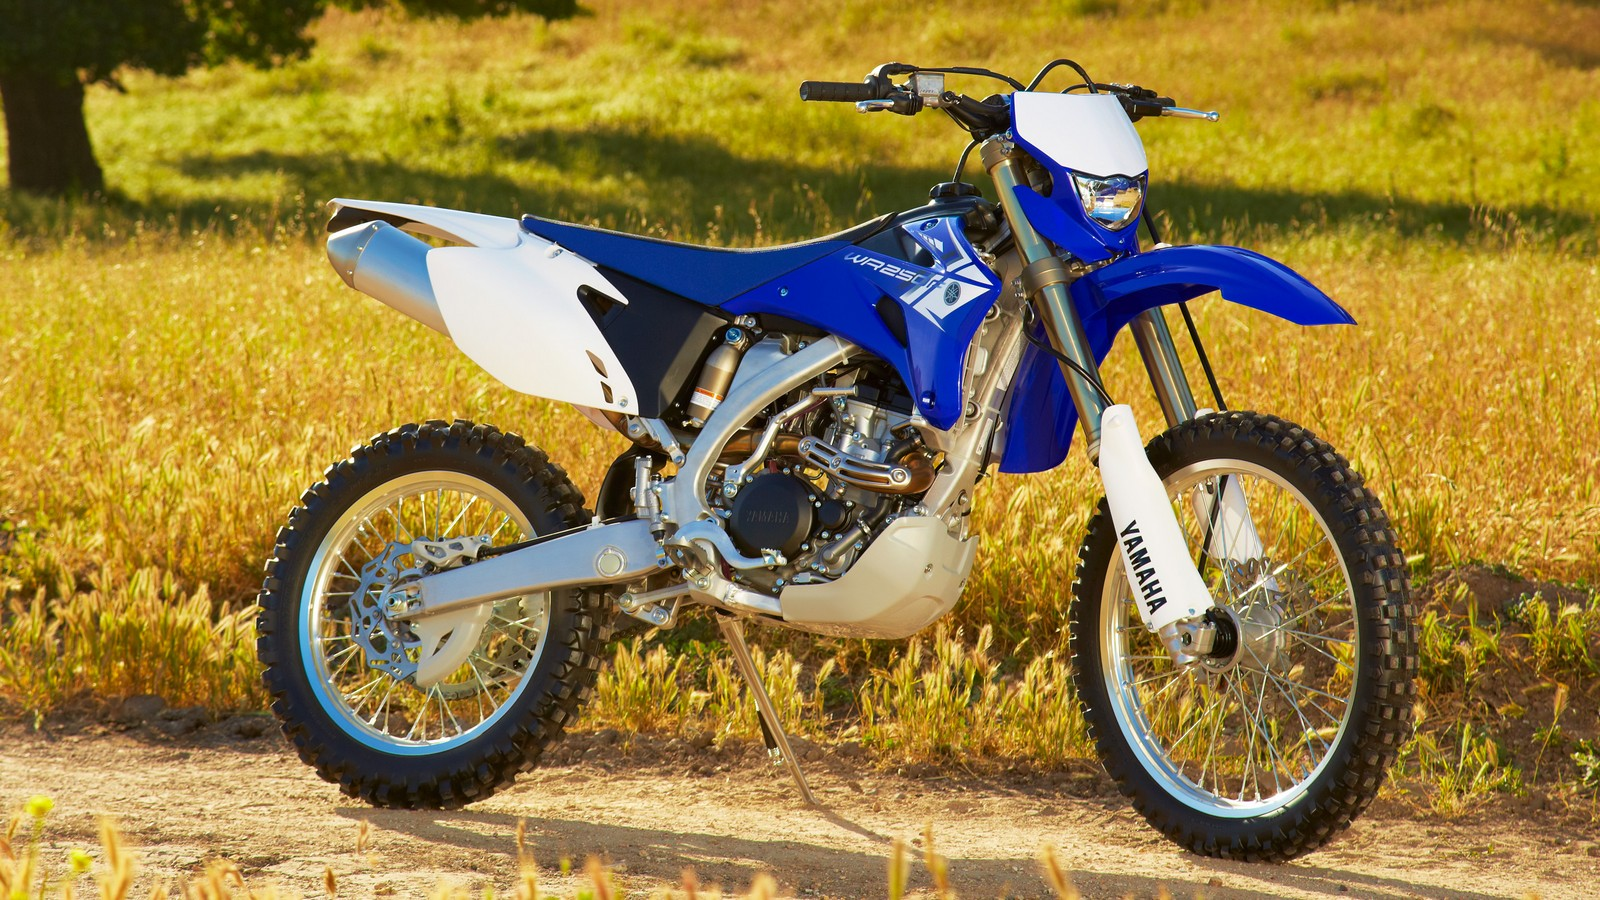 2013 yamaha wr250f review top speed. Black Bedroom Furniture Sets. Home Design Ideas